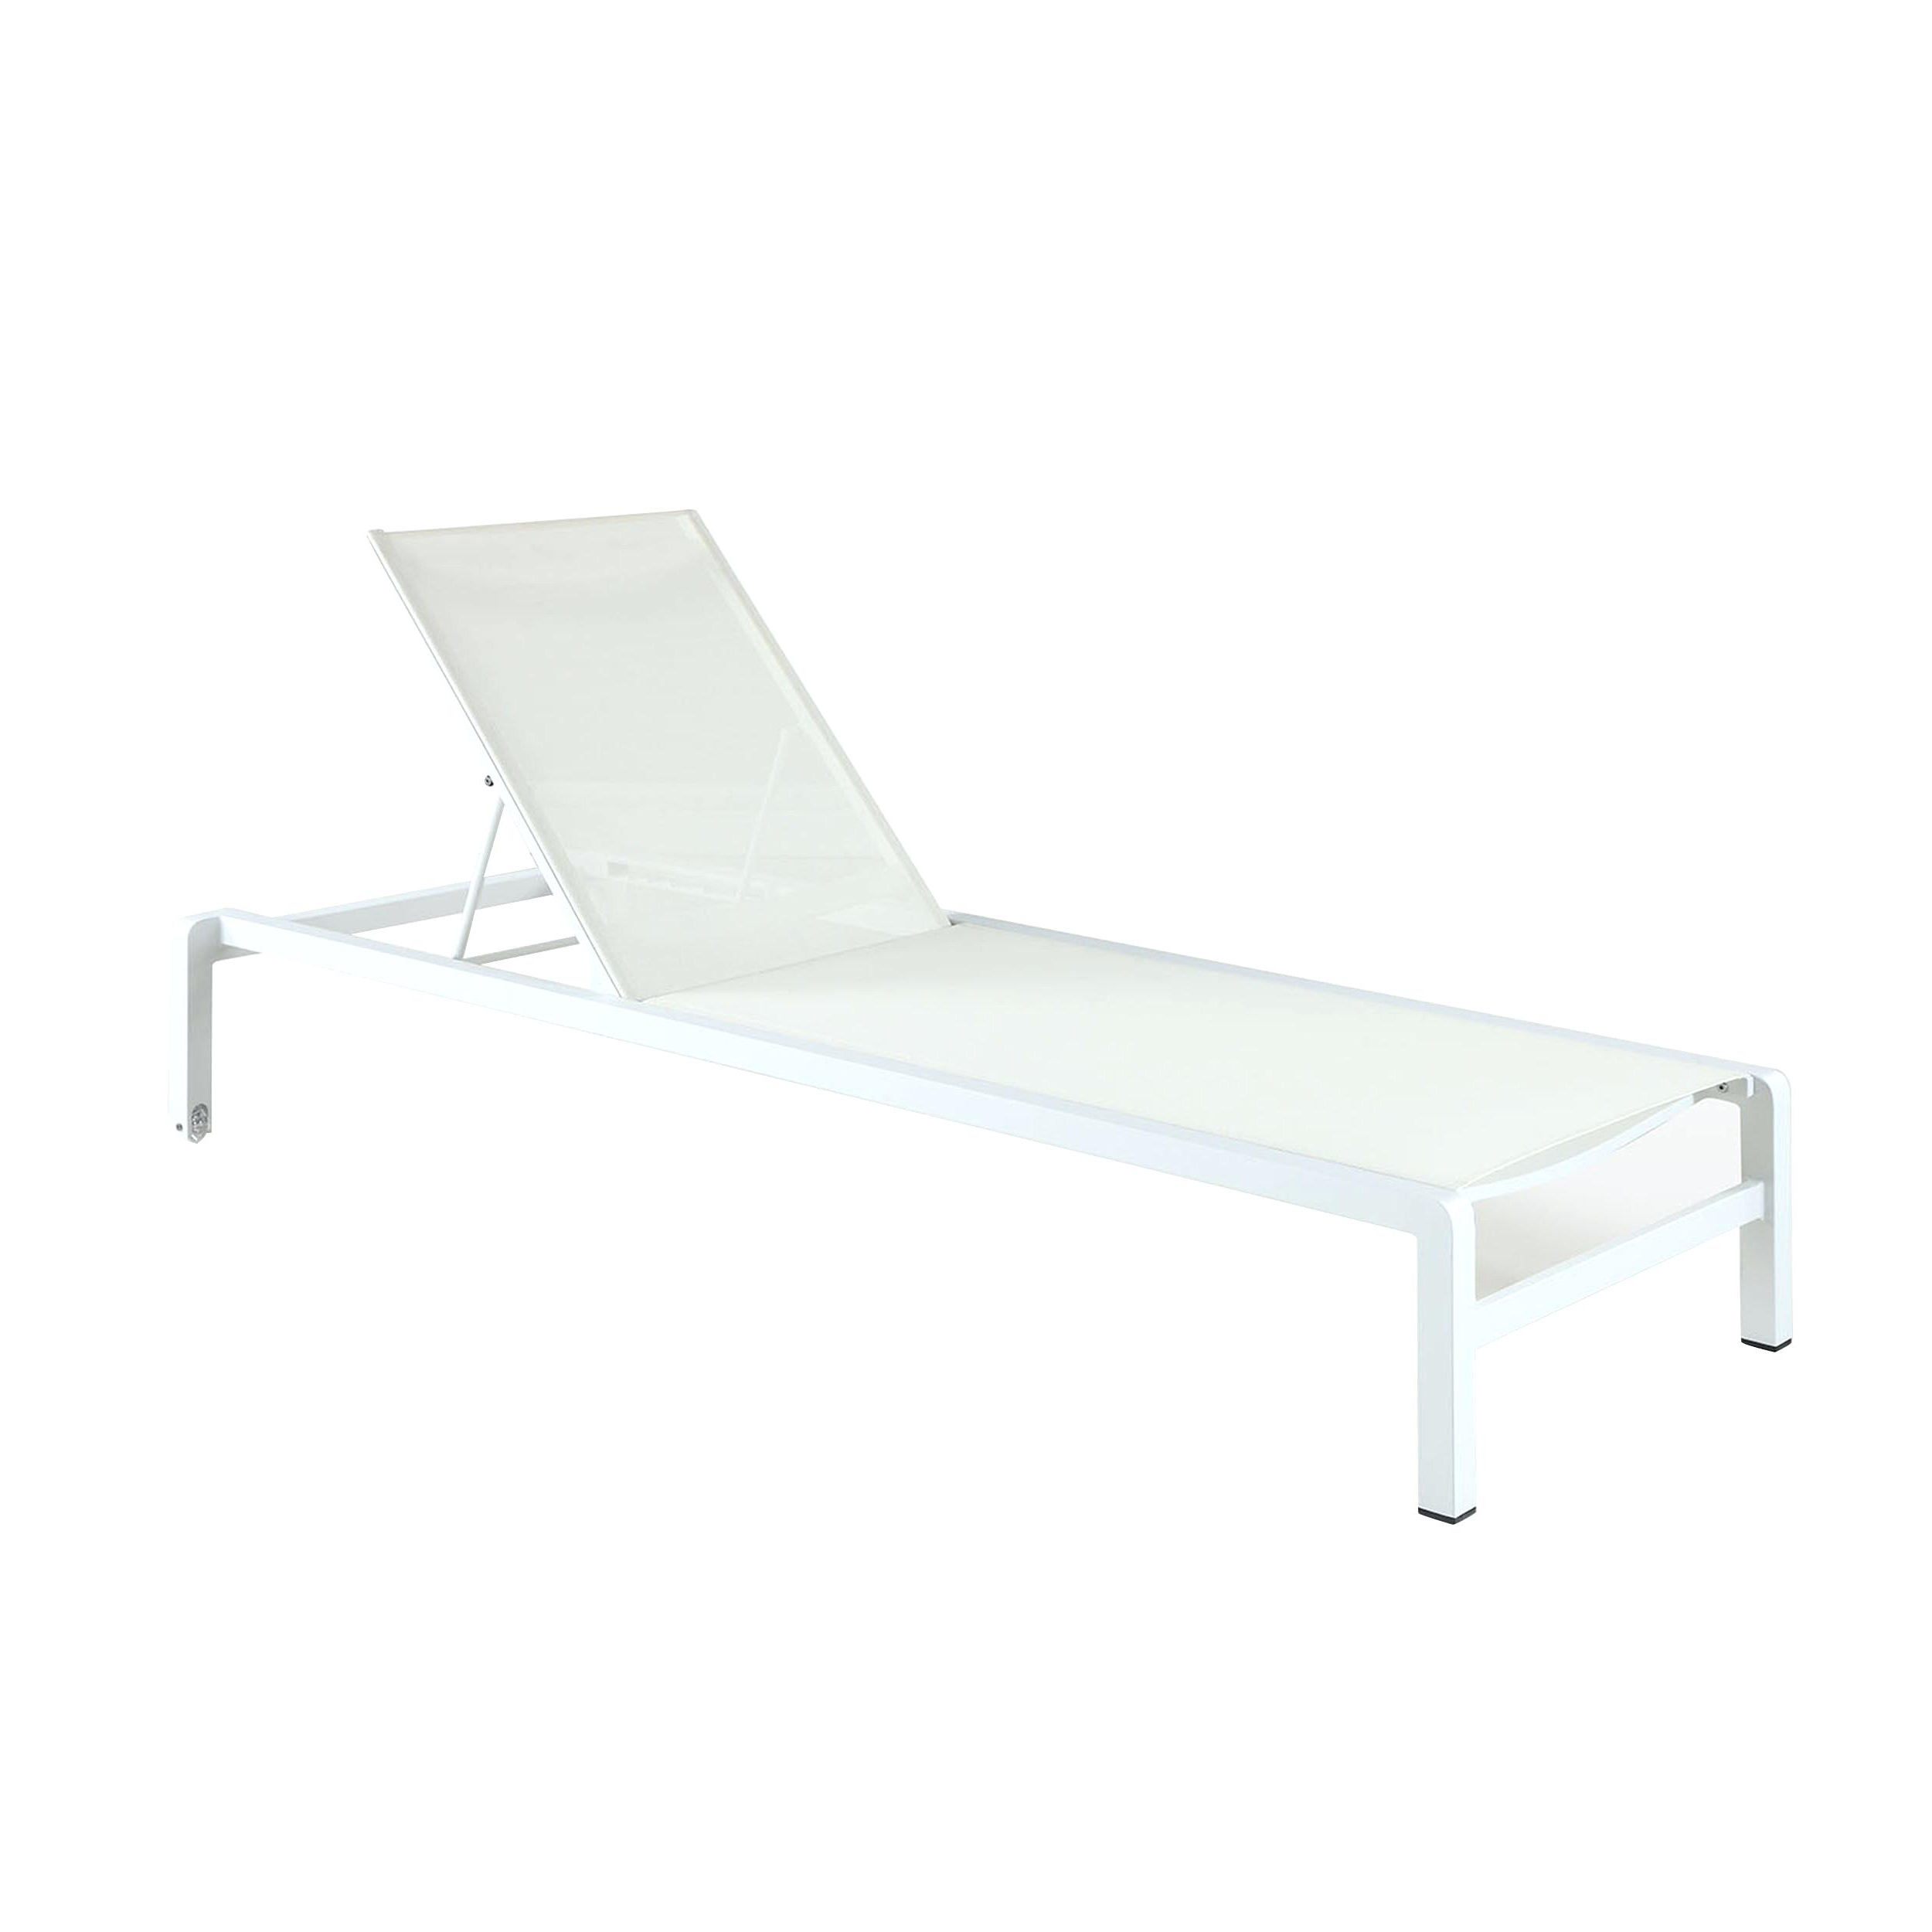 Delectable Aluminum Chaise Lounge Chair Furniture Outdoor Regarding Well Known Floral Blossom Chaise Lounge Chairs With Cushion (View 20 of 25)